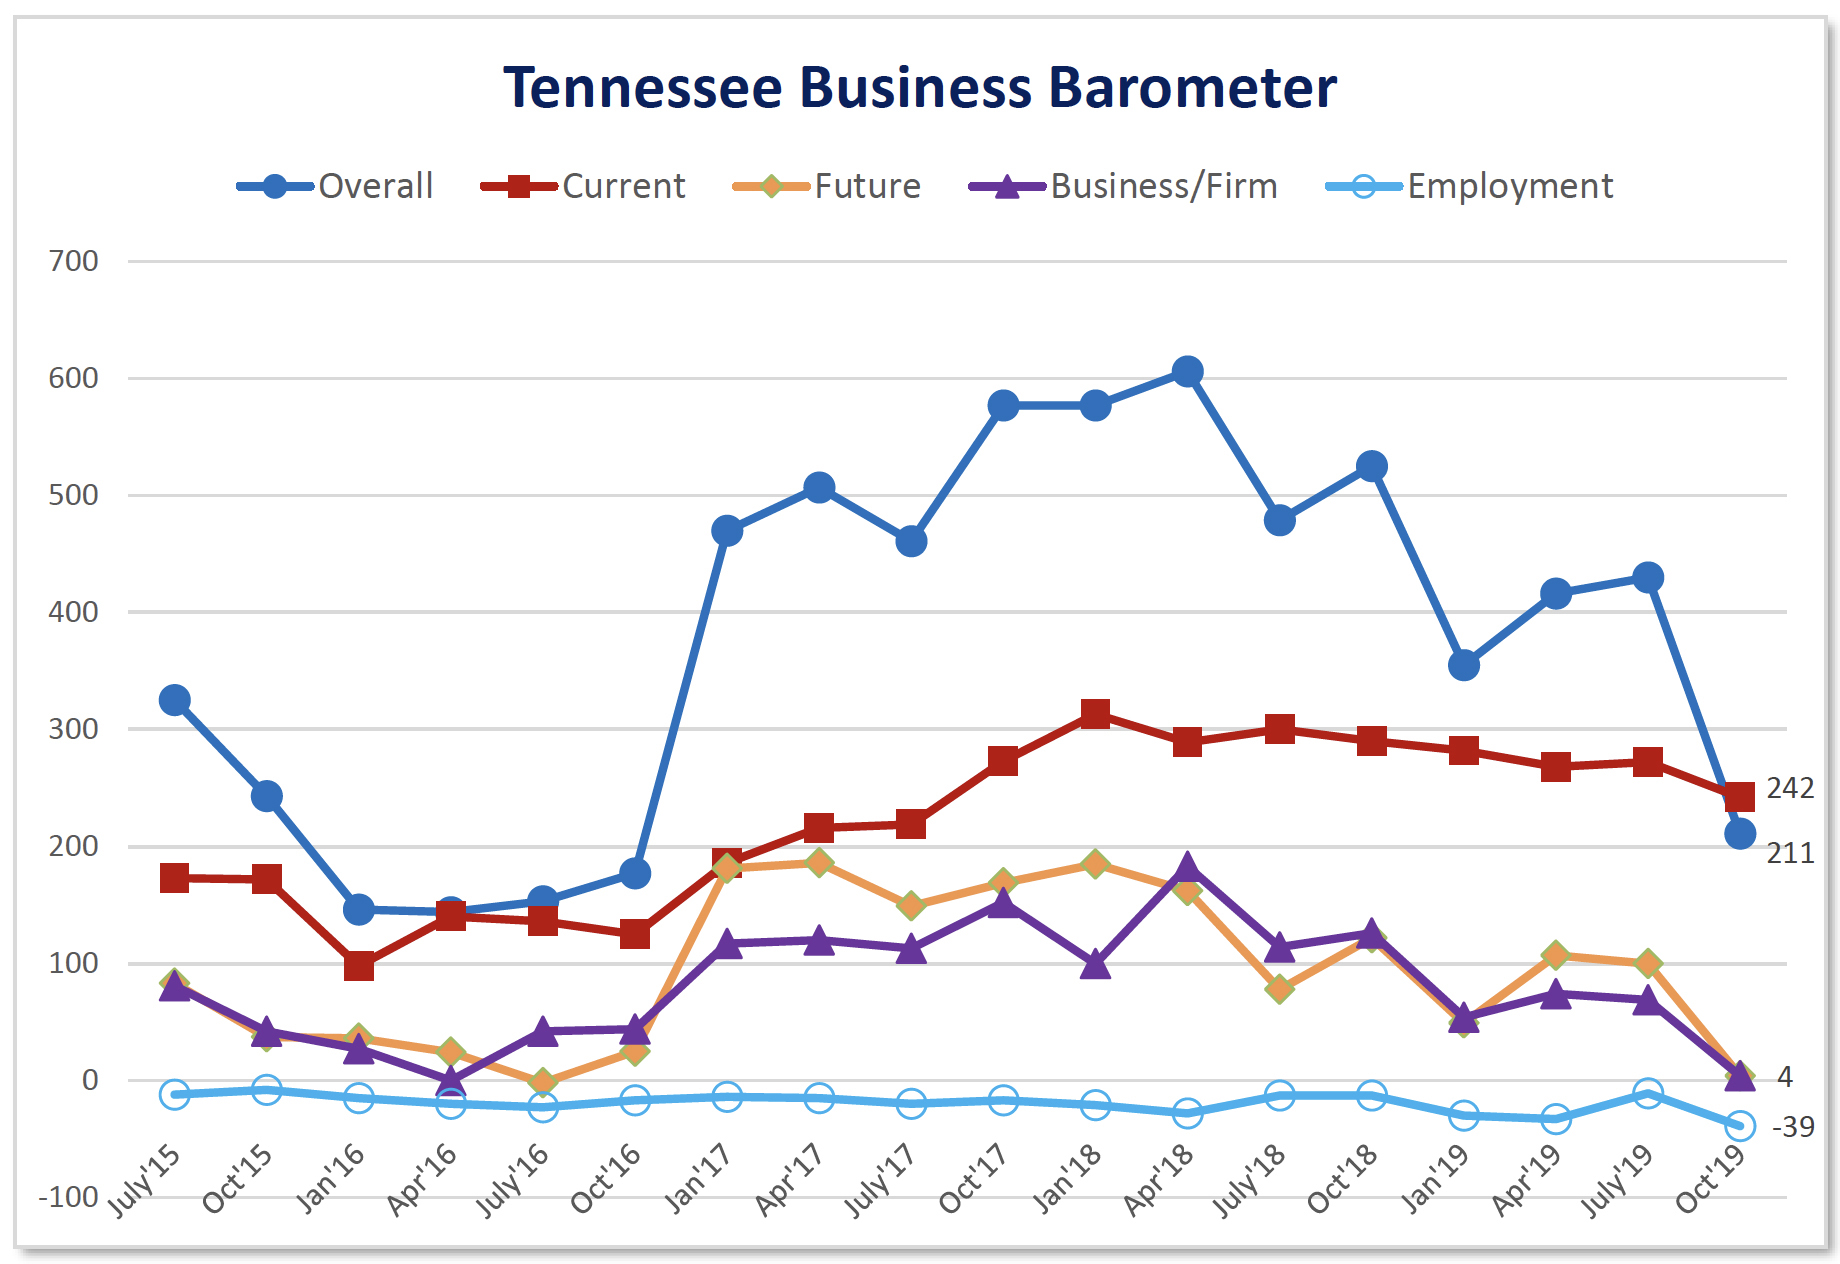 Outlook among Tennessee business leaders has fallen sharply in recent months, according to the latest Tennessee Business Barometer by MTSU's Jones College of Business.